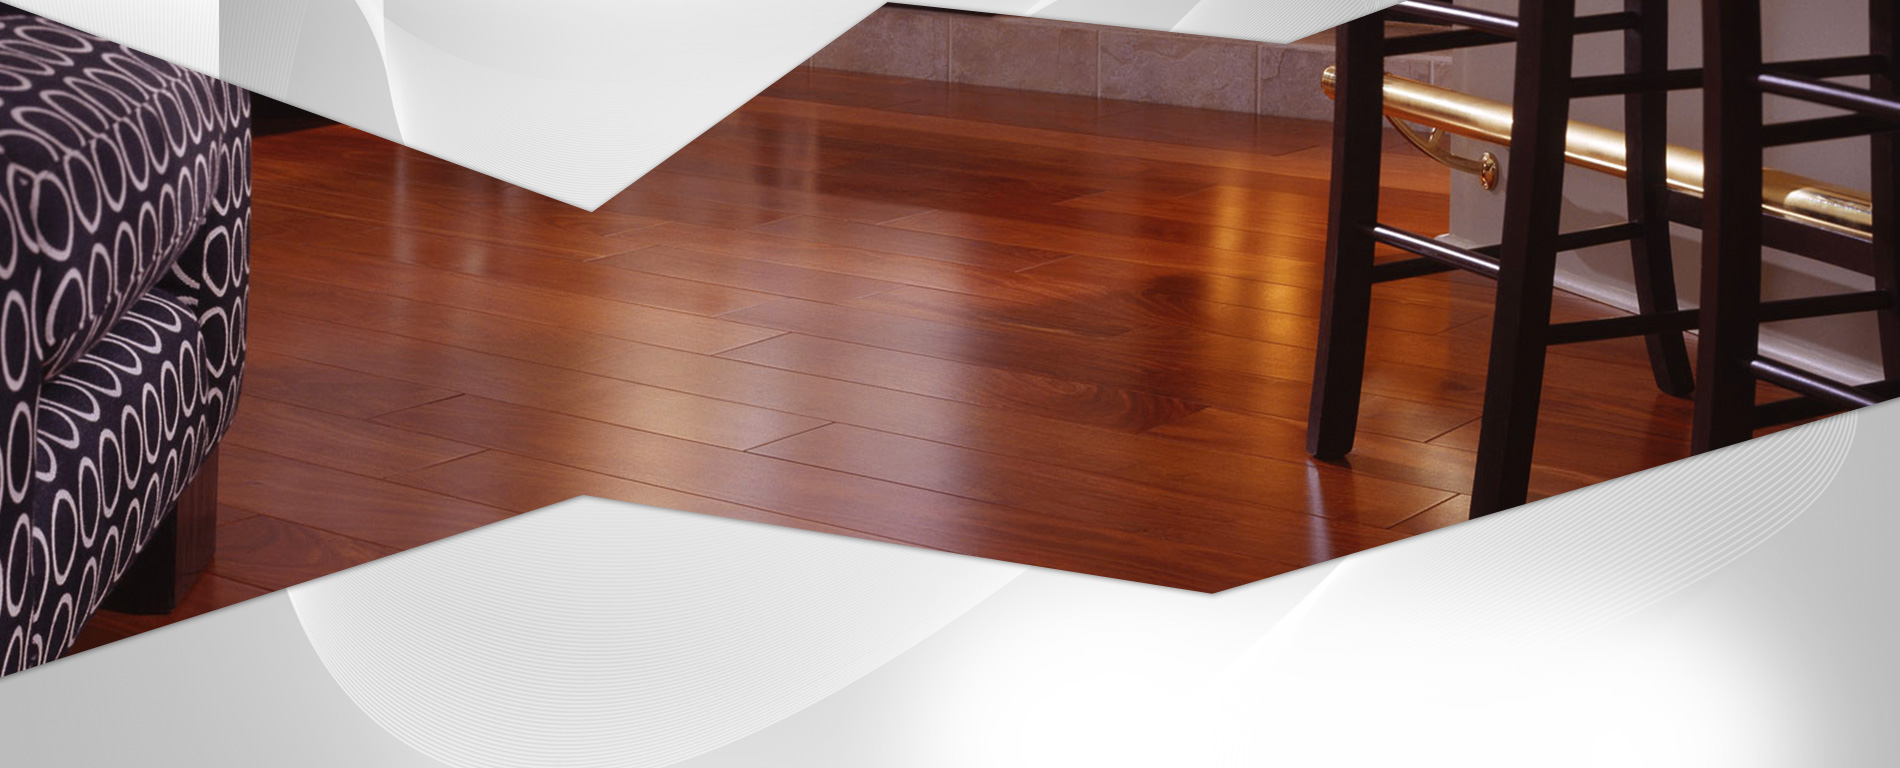 Hardwood floors charlotte carolina wood flooring for Hardwood floors charlotte nc